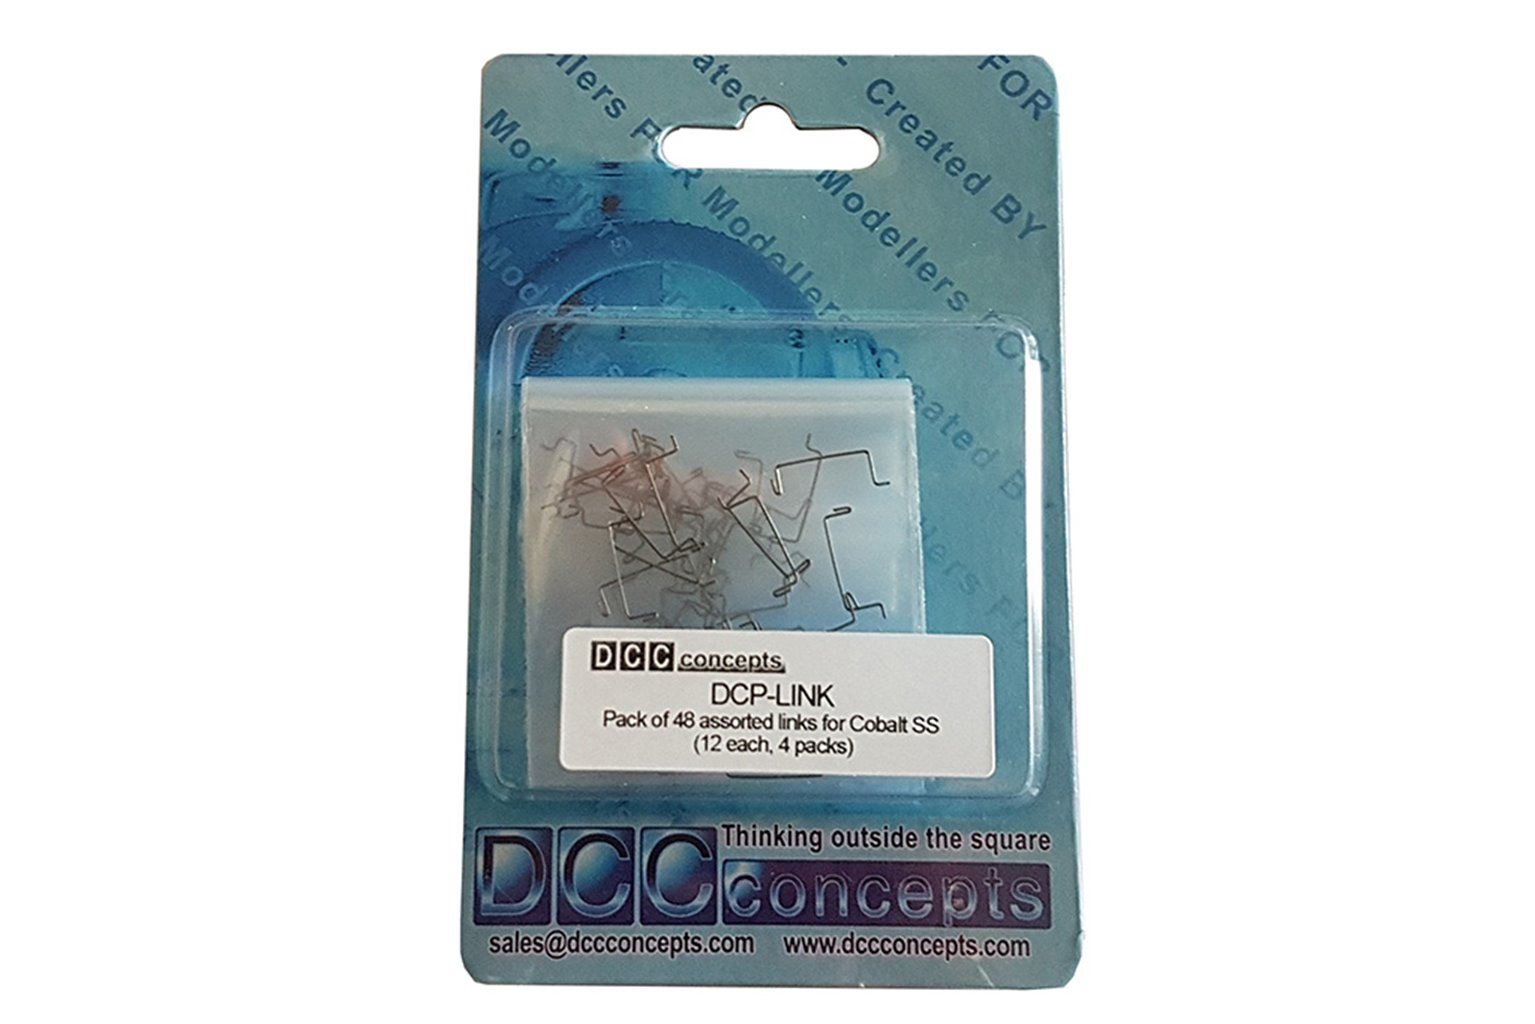 Pack of 48 Assorted Links for Cobalt-SS (12 each, 4 types)